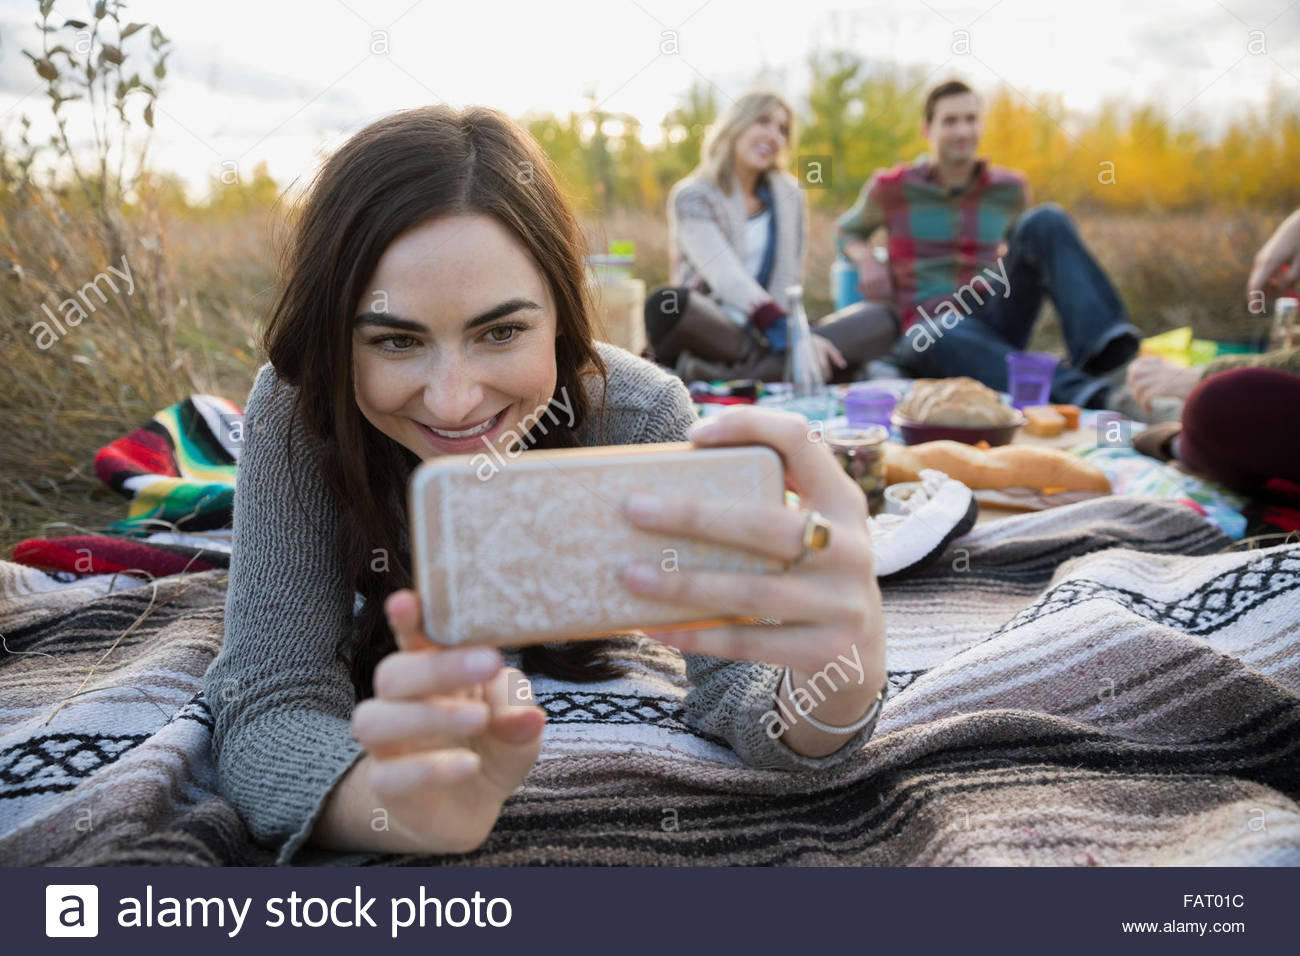 Young woman taking selfie on picnic blanket in field - Stock Image